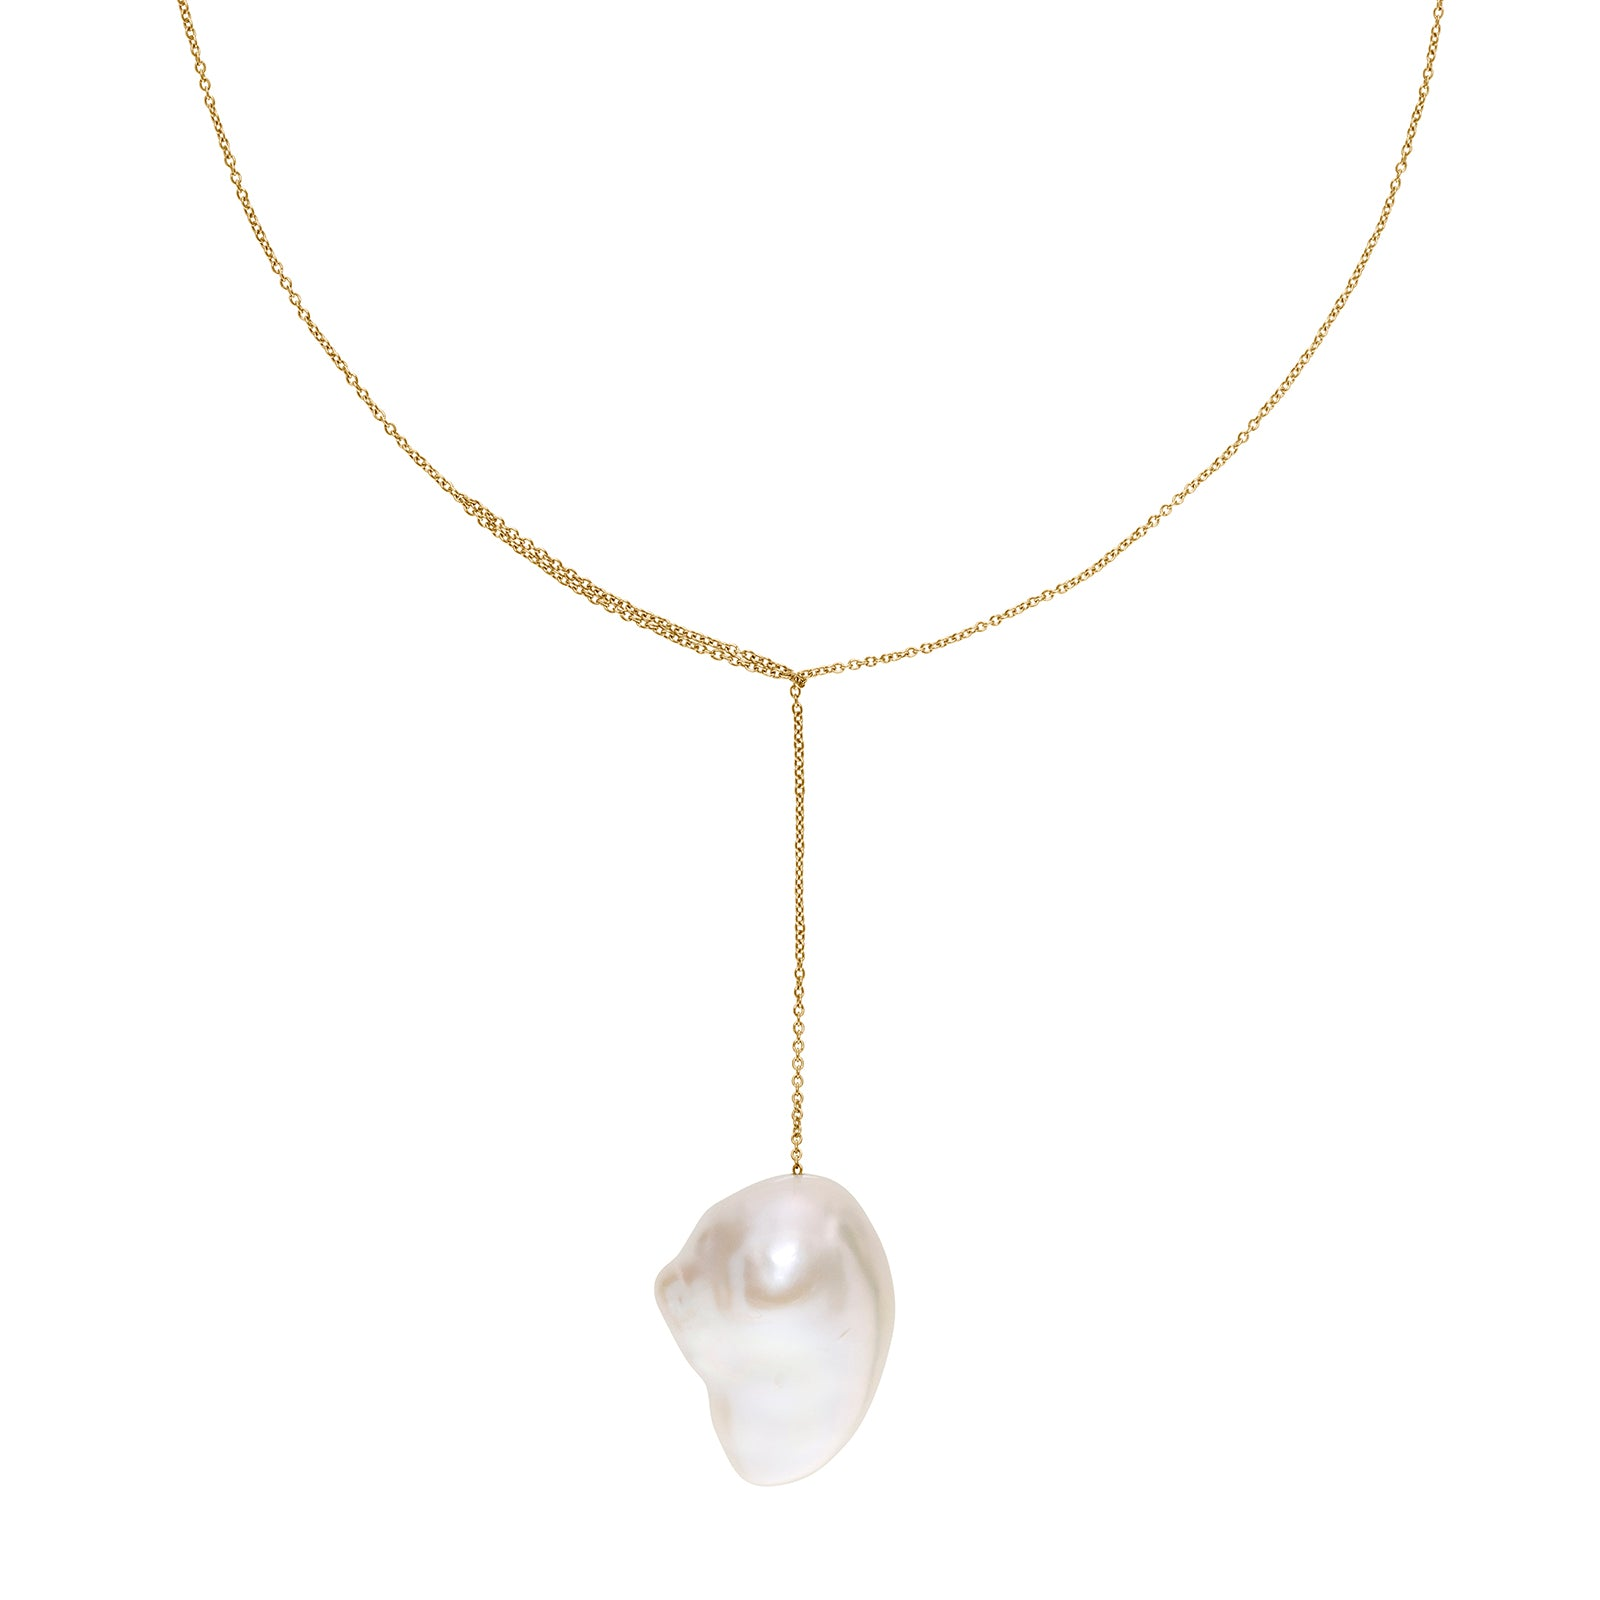 Sophie Bille Brahe Sirene Lariat Necklace - Necklaces - Broken English Jewelry